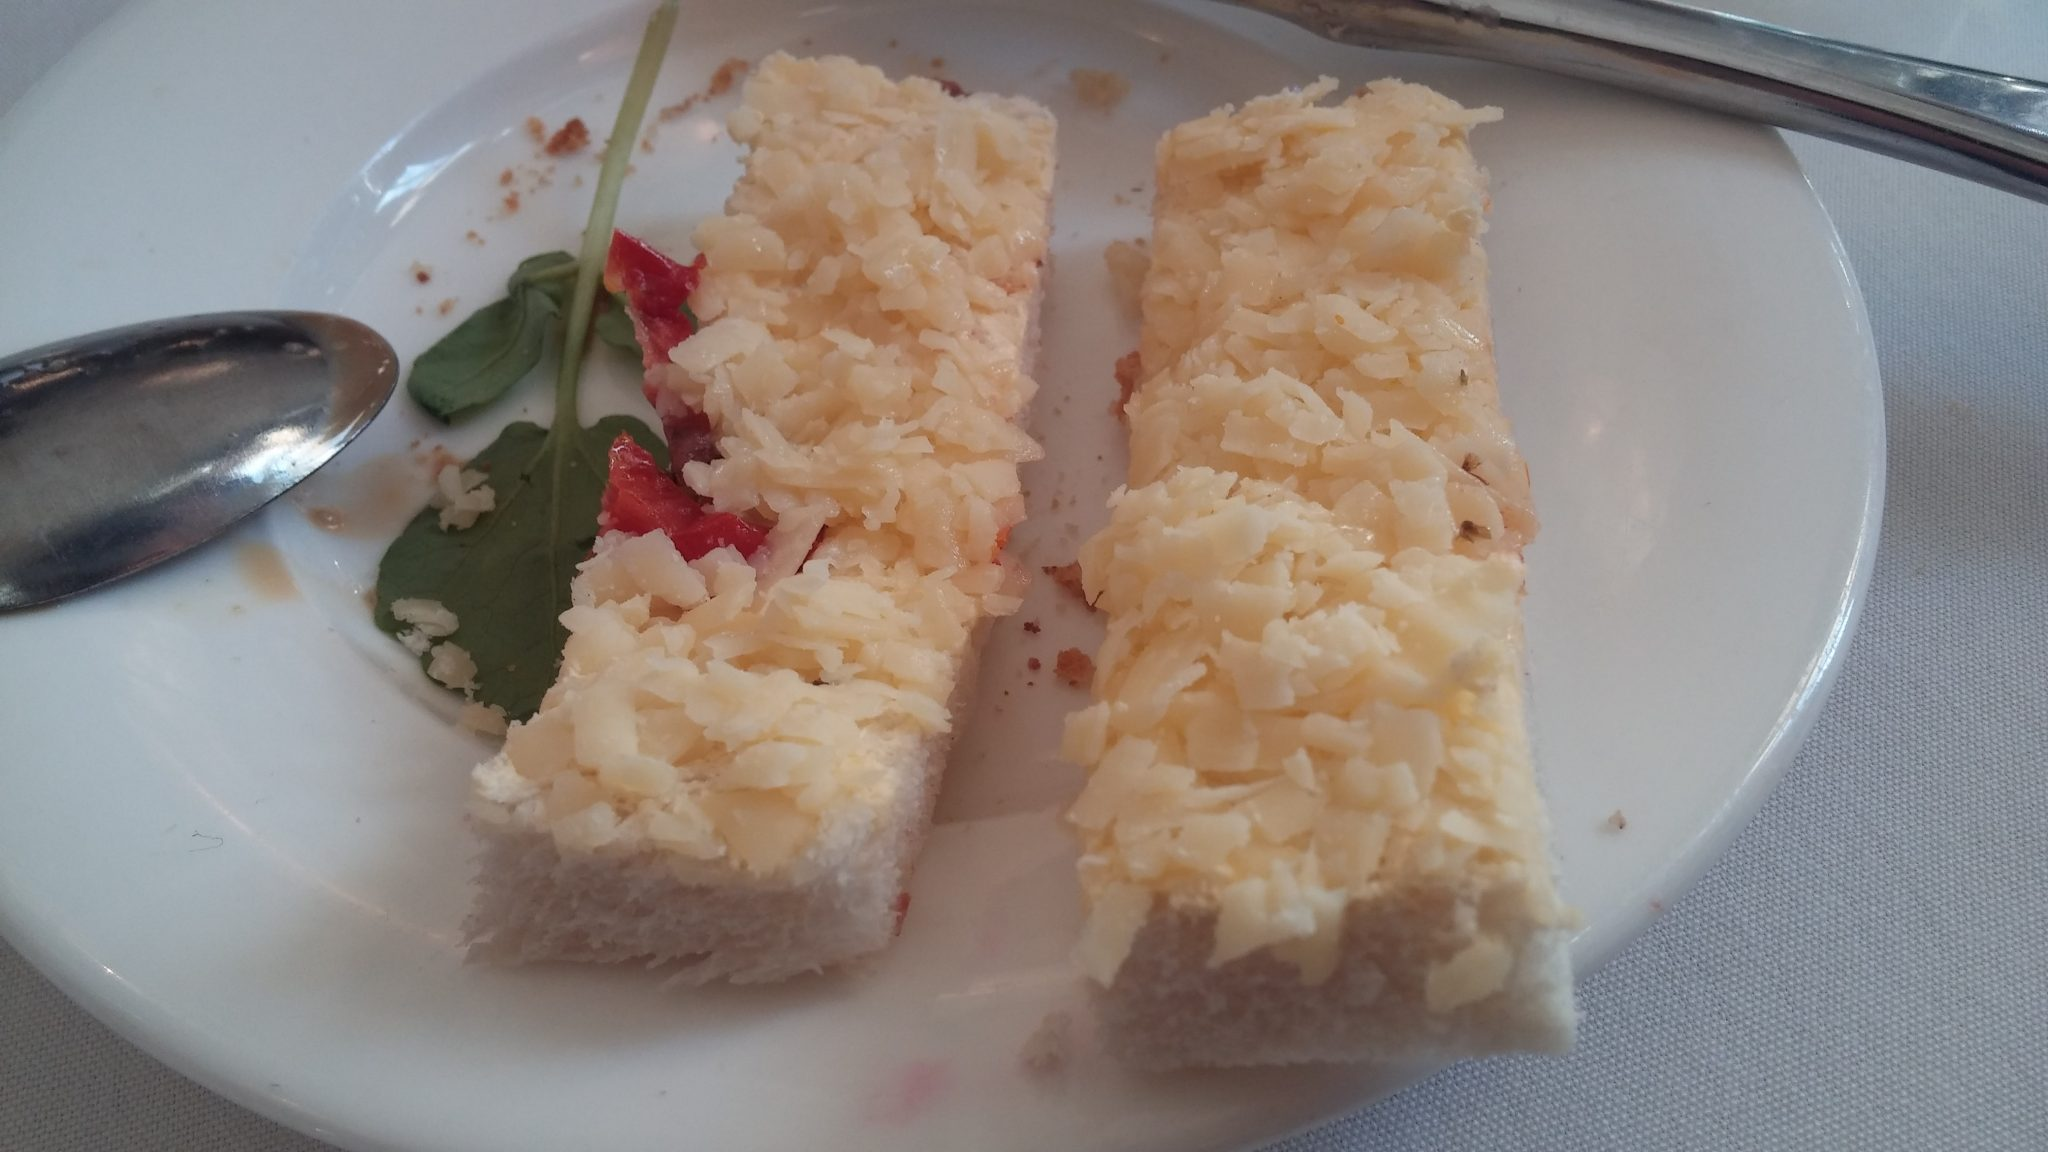 Grated cheese and bitty tomato sandwich on dry bread